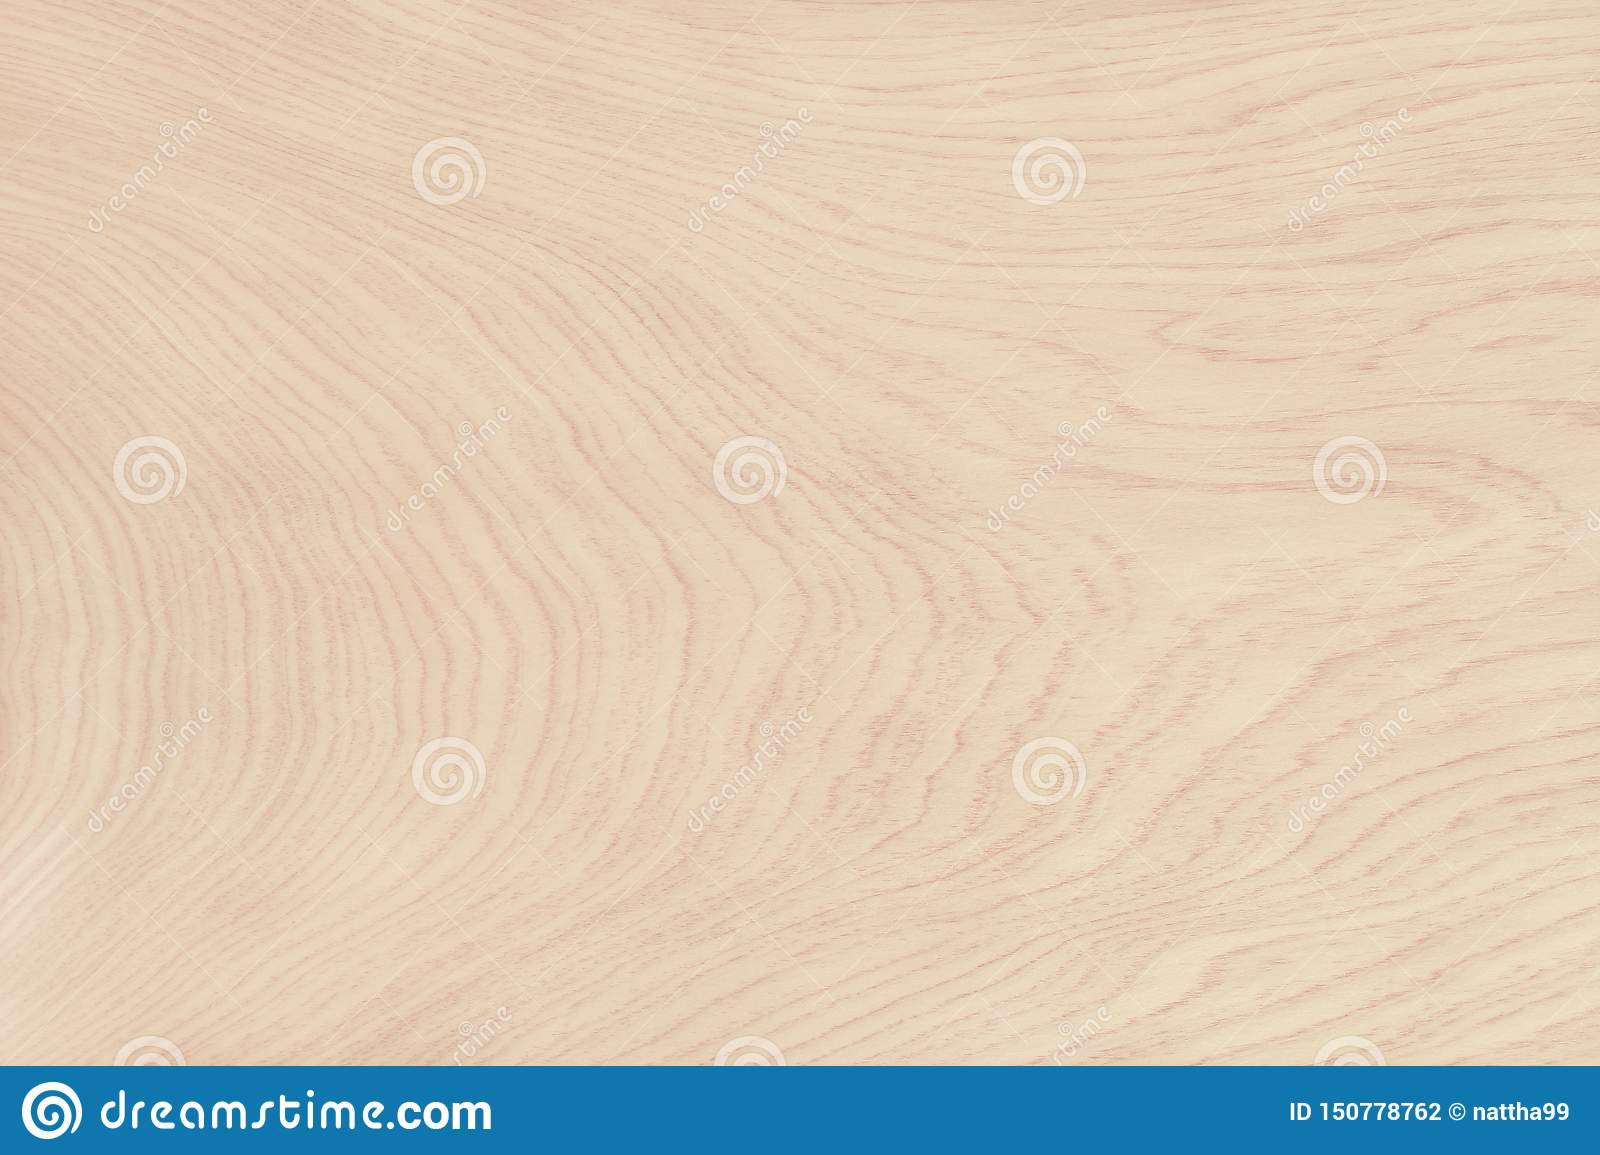 Plywood surface in natural pattern with high resolution. Wooden grained texture background